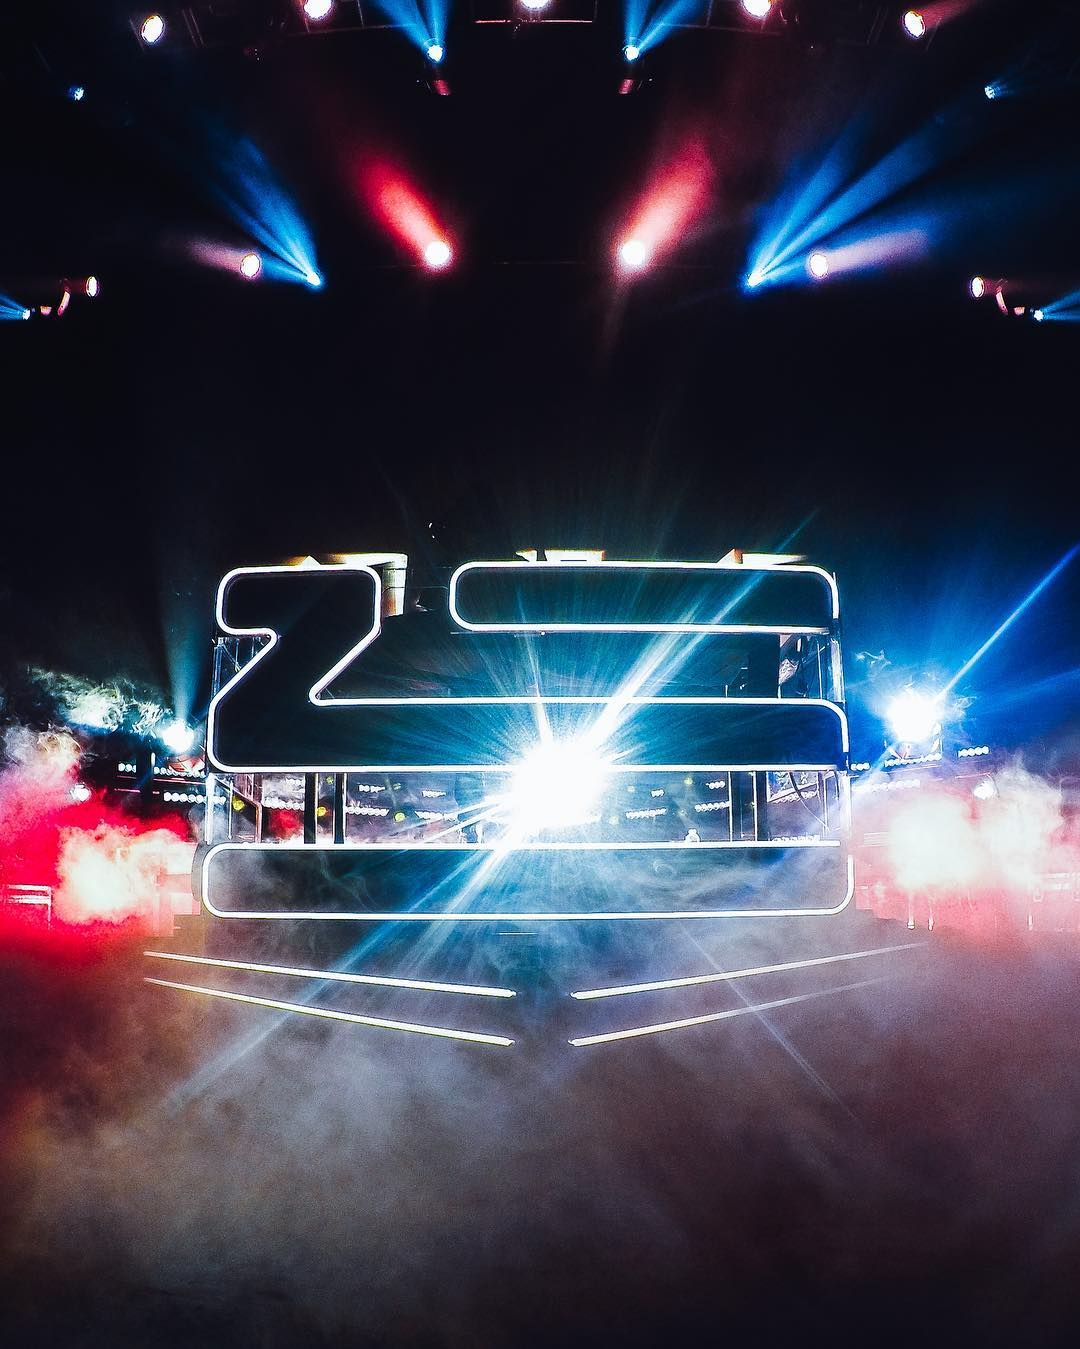 "@zhumusic purposely stays out of the spotlight during sets, to keep the focus on the music. ""It's all about art, and we try to make it about the songs and the response."" #GoPro #GoProMusic"